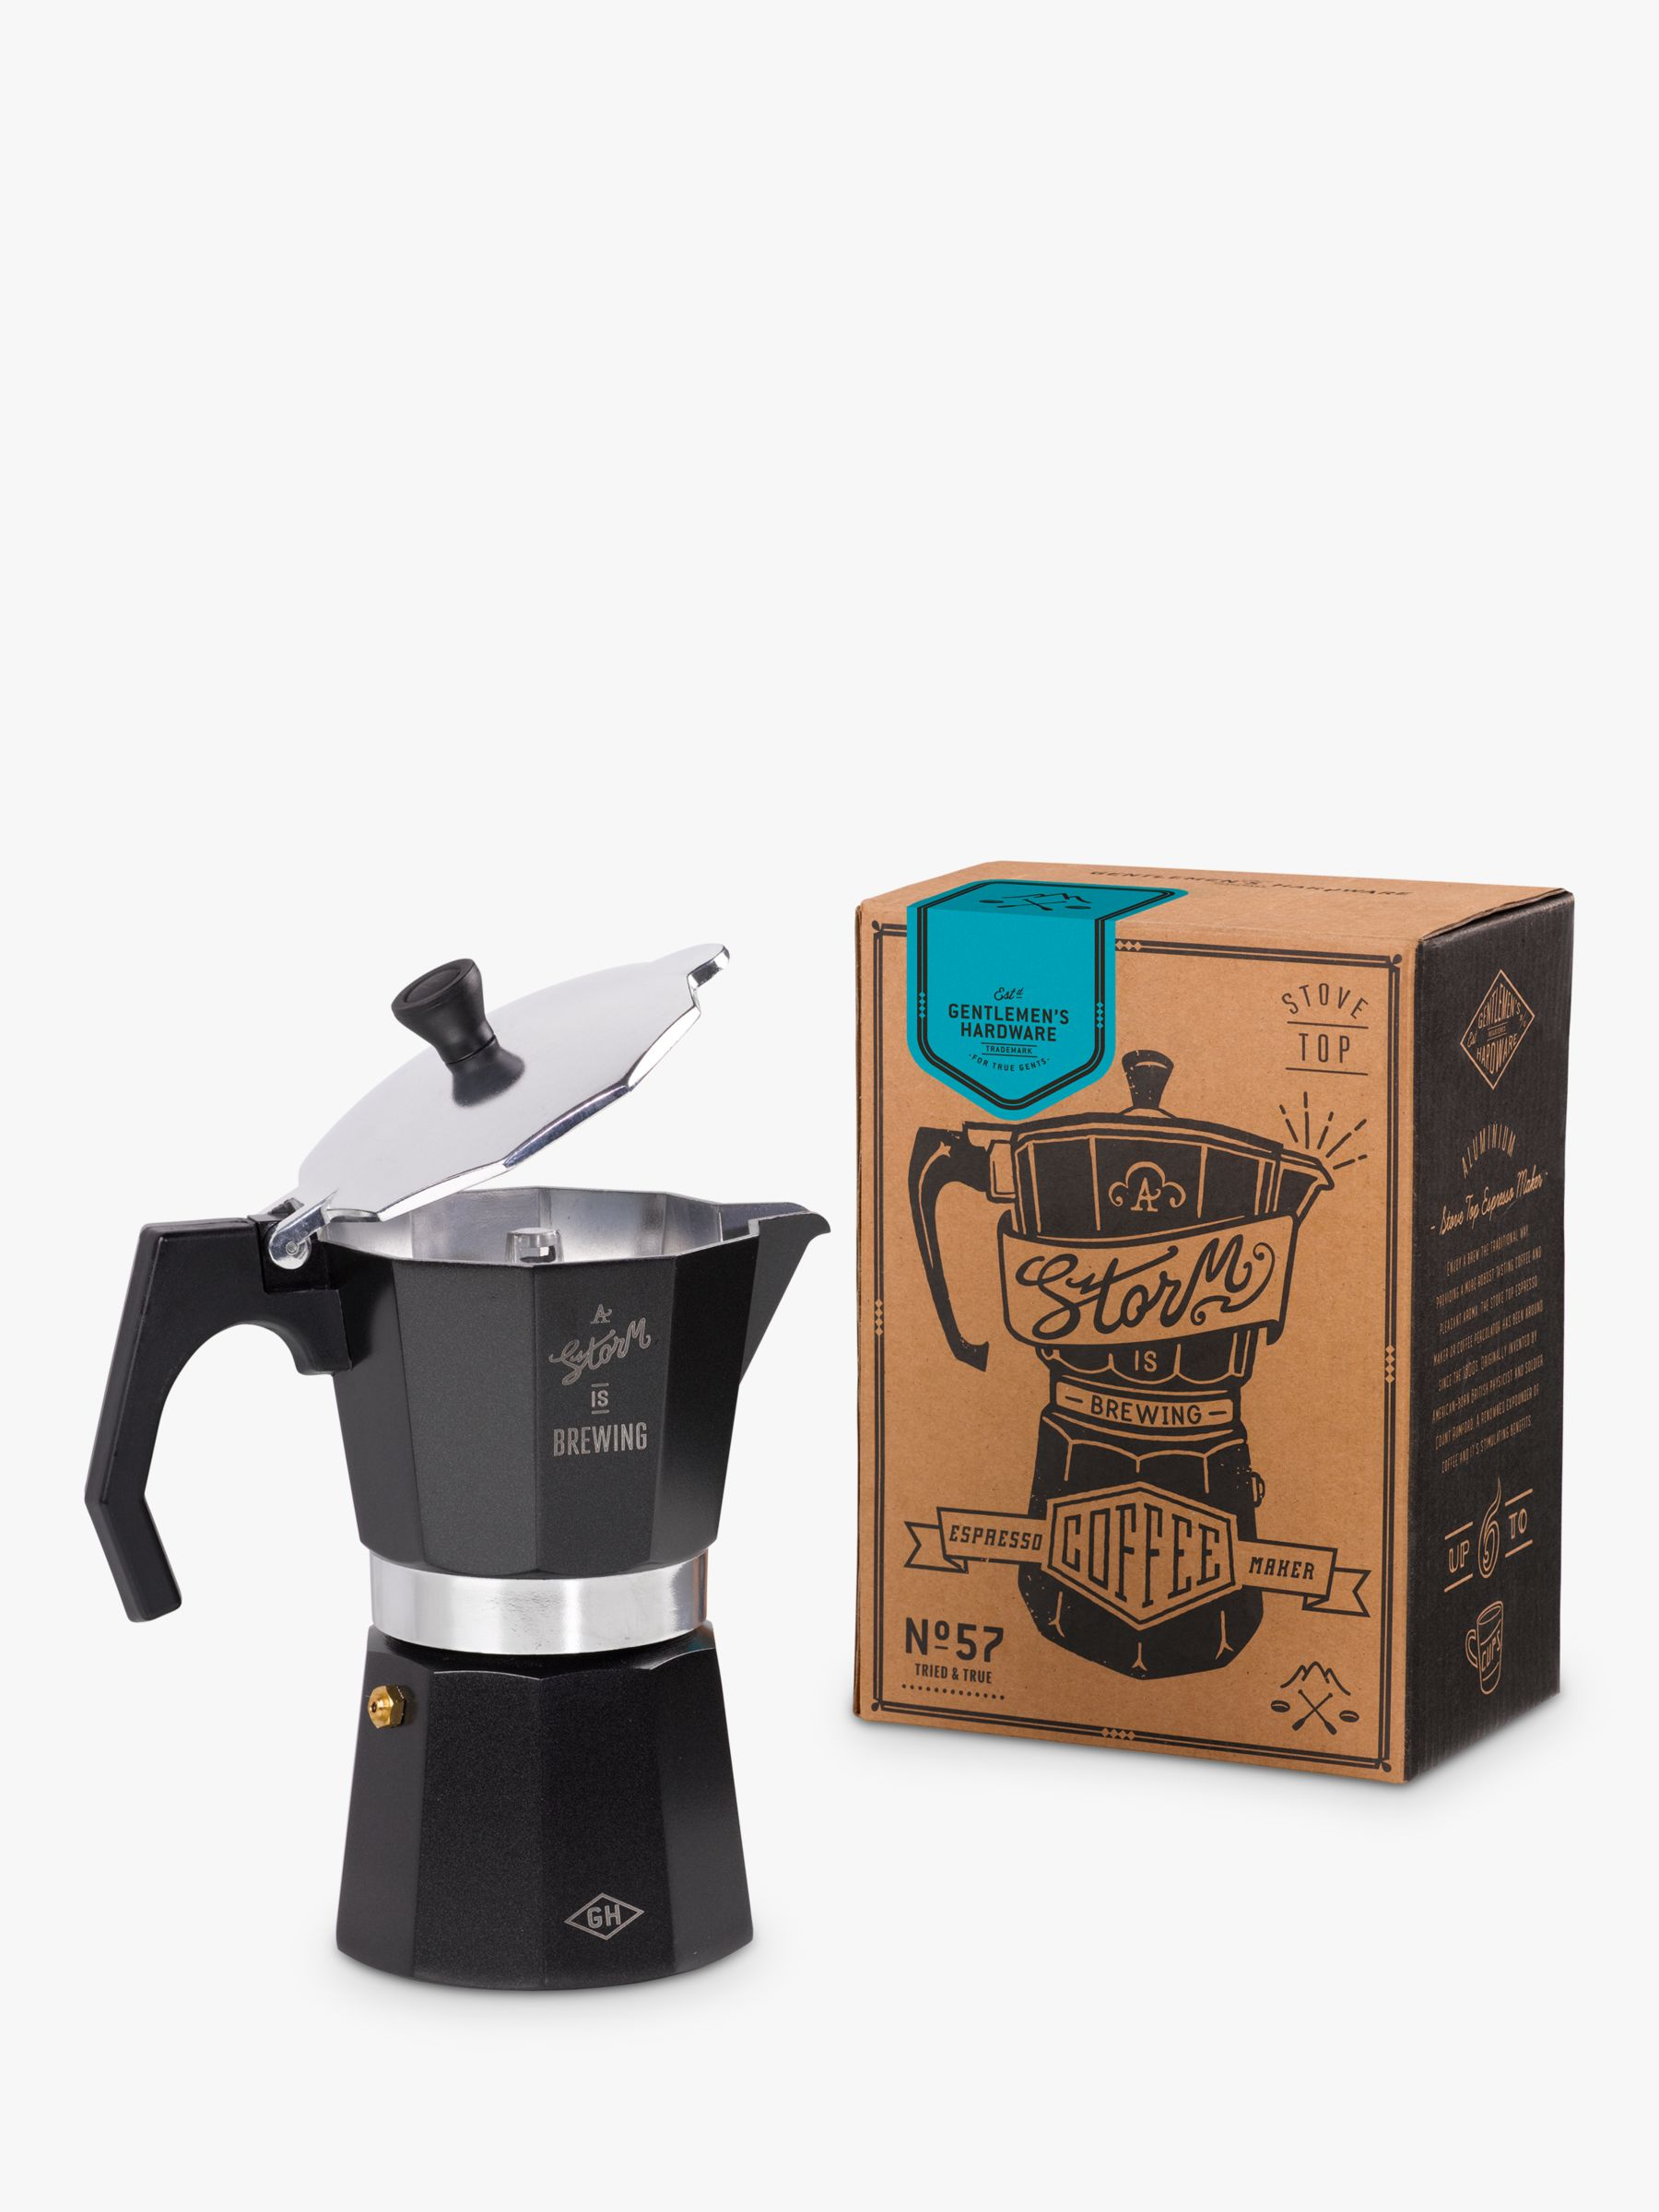 Gentlemen's Hardware Gentlemen's Hardware A Storm is Brewing Coffee Percolator